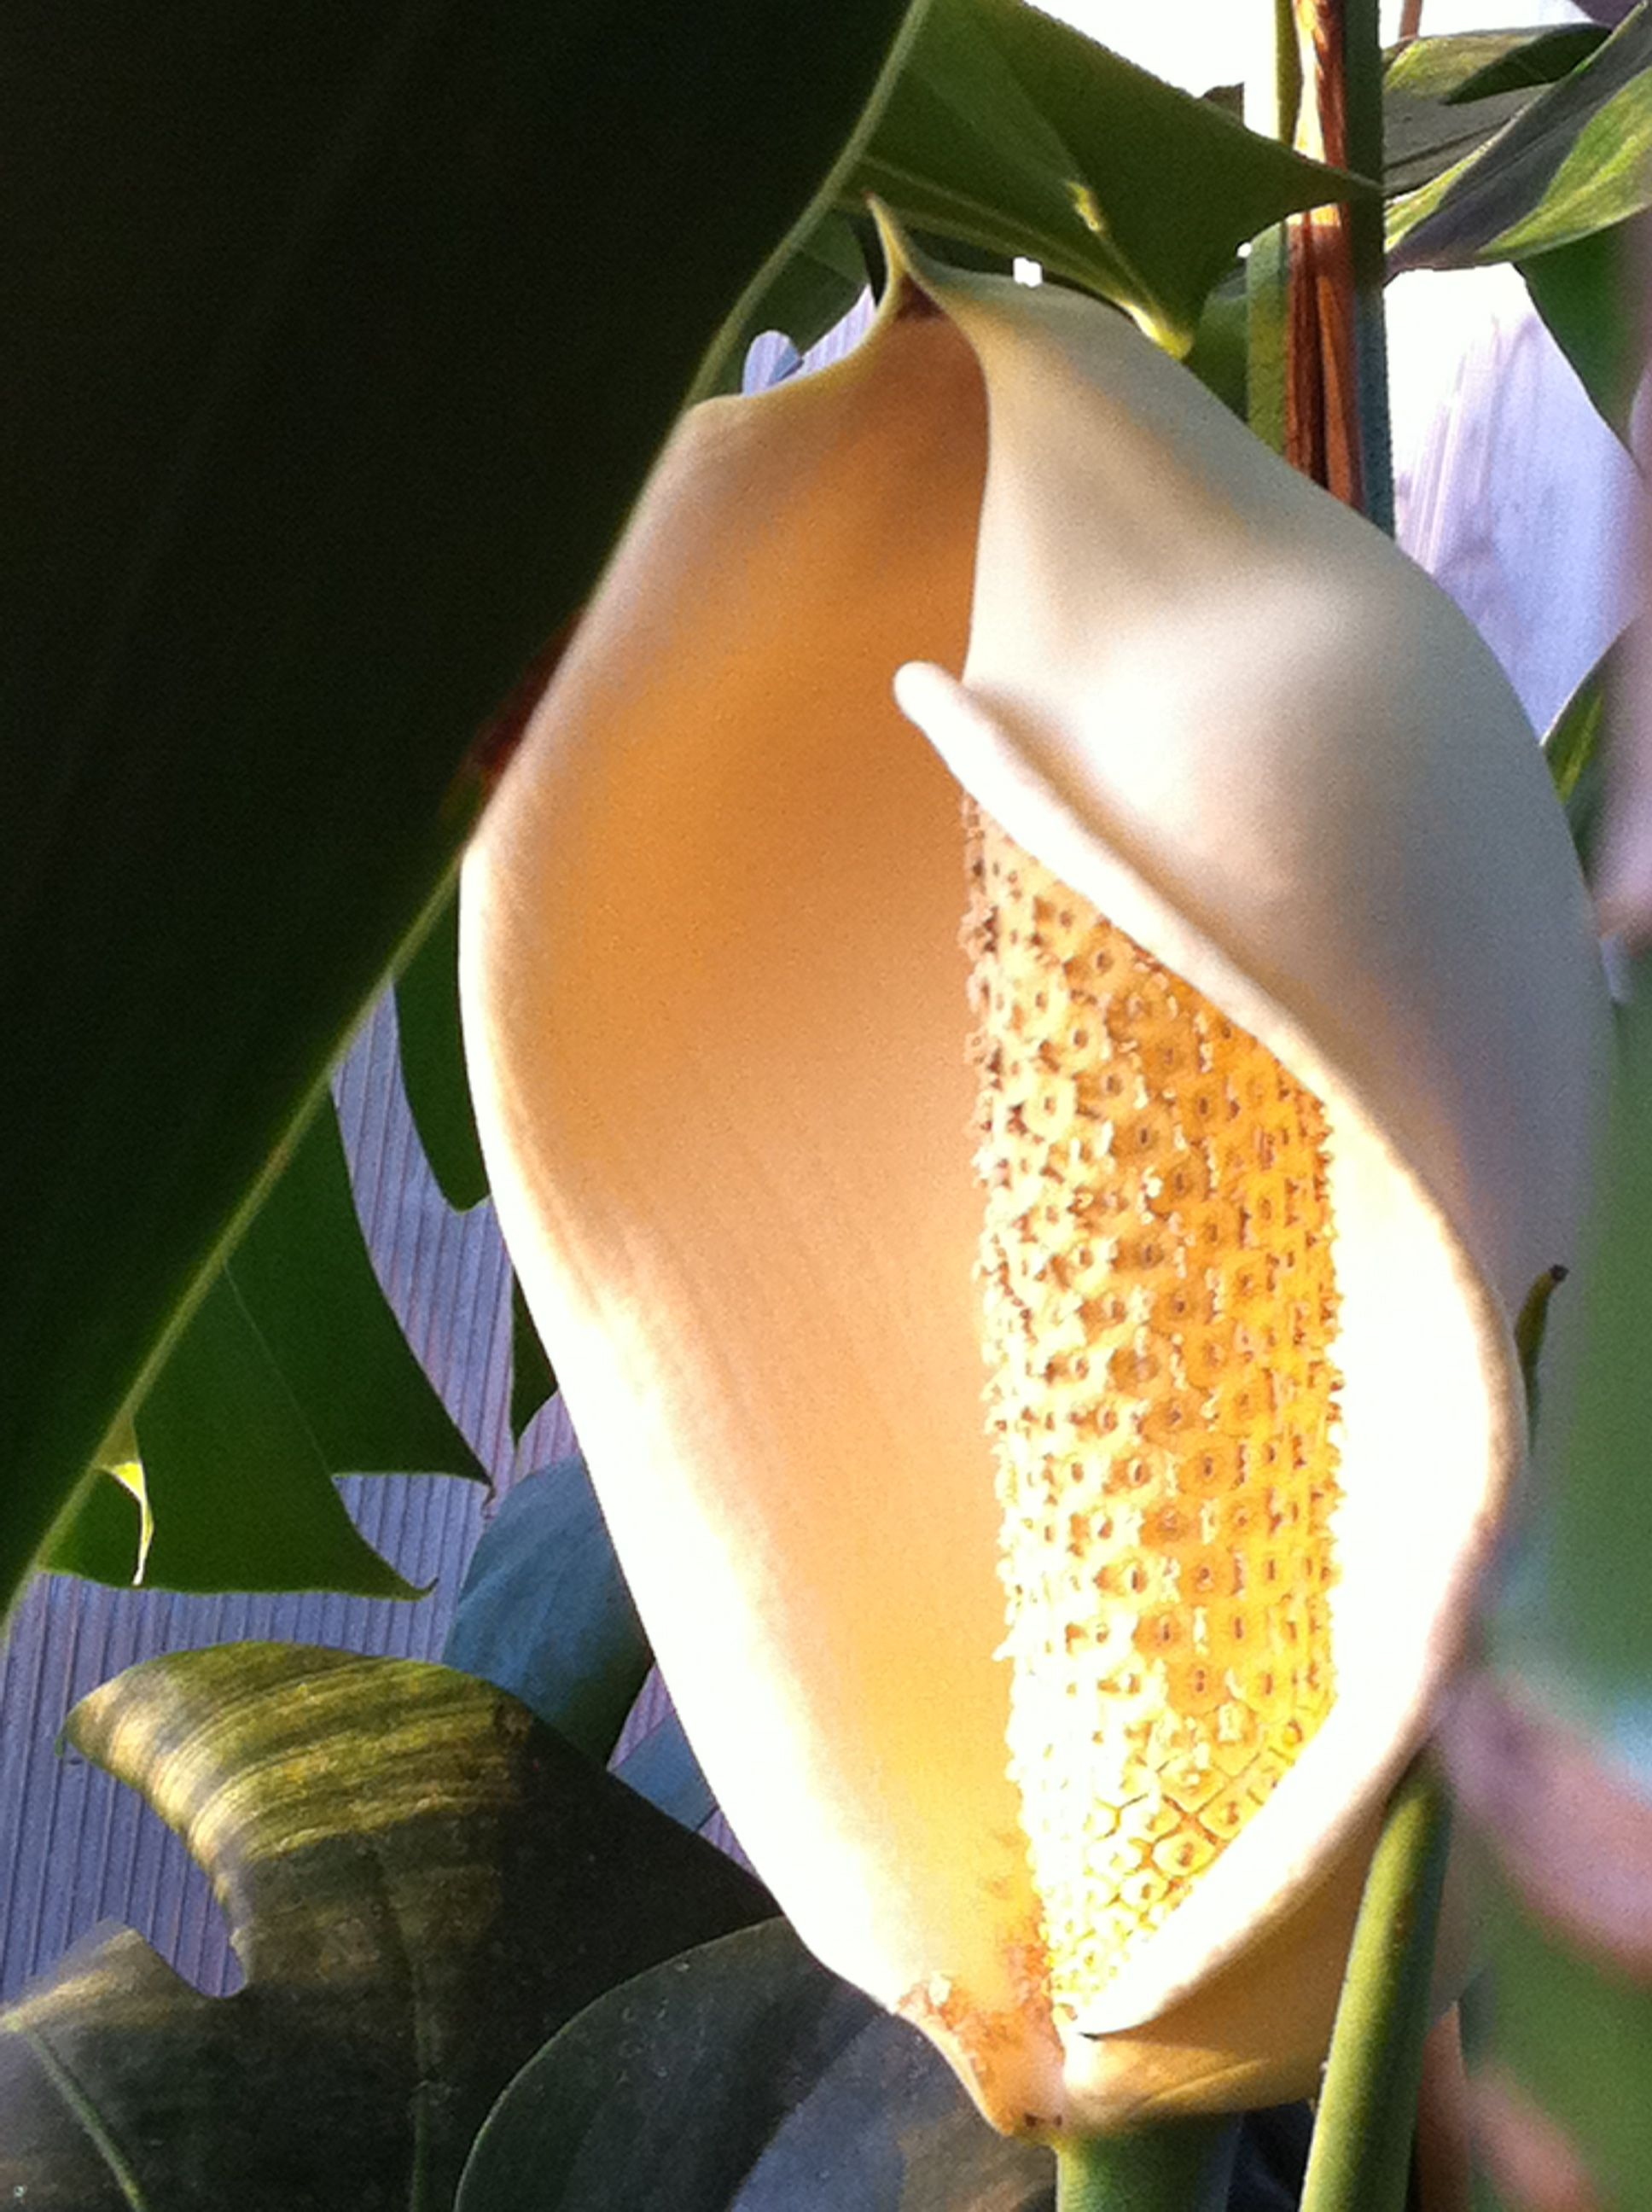 Monstera deliciosa flower looks very much like an enlarged peace monstera deliciosa flower looks very much like an enlarged peace lily flower with the izmirmasajfo Choice Image